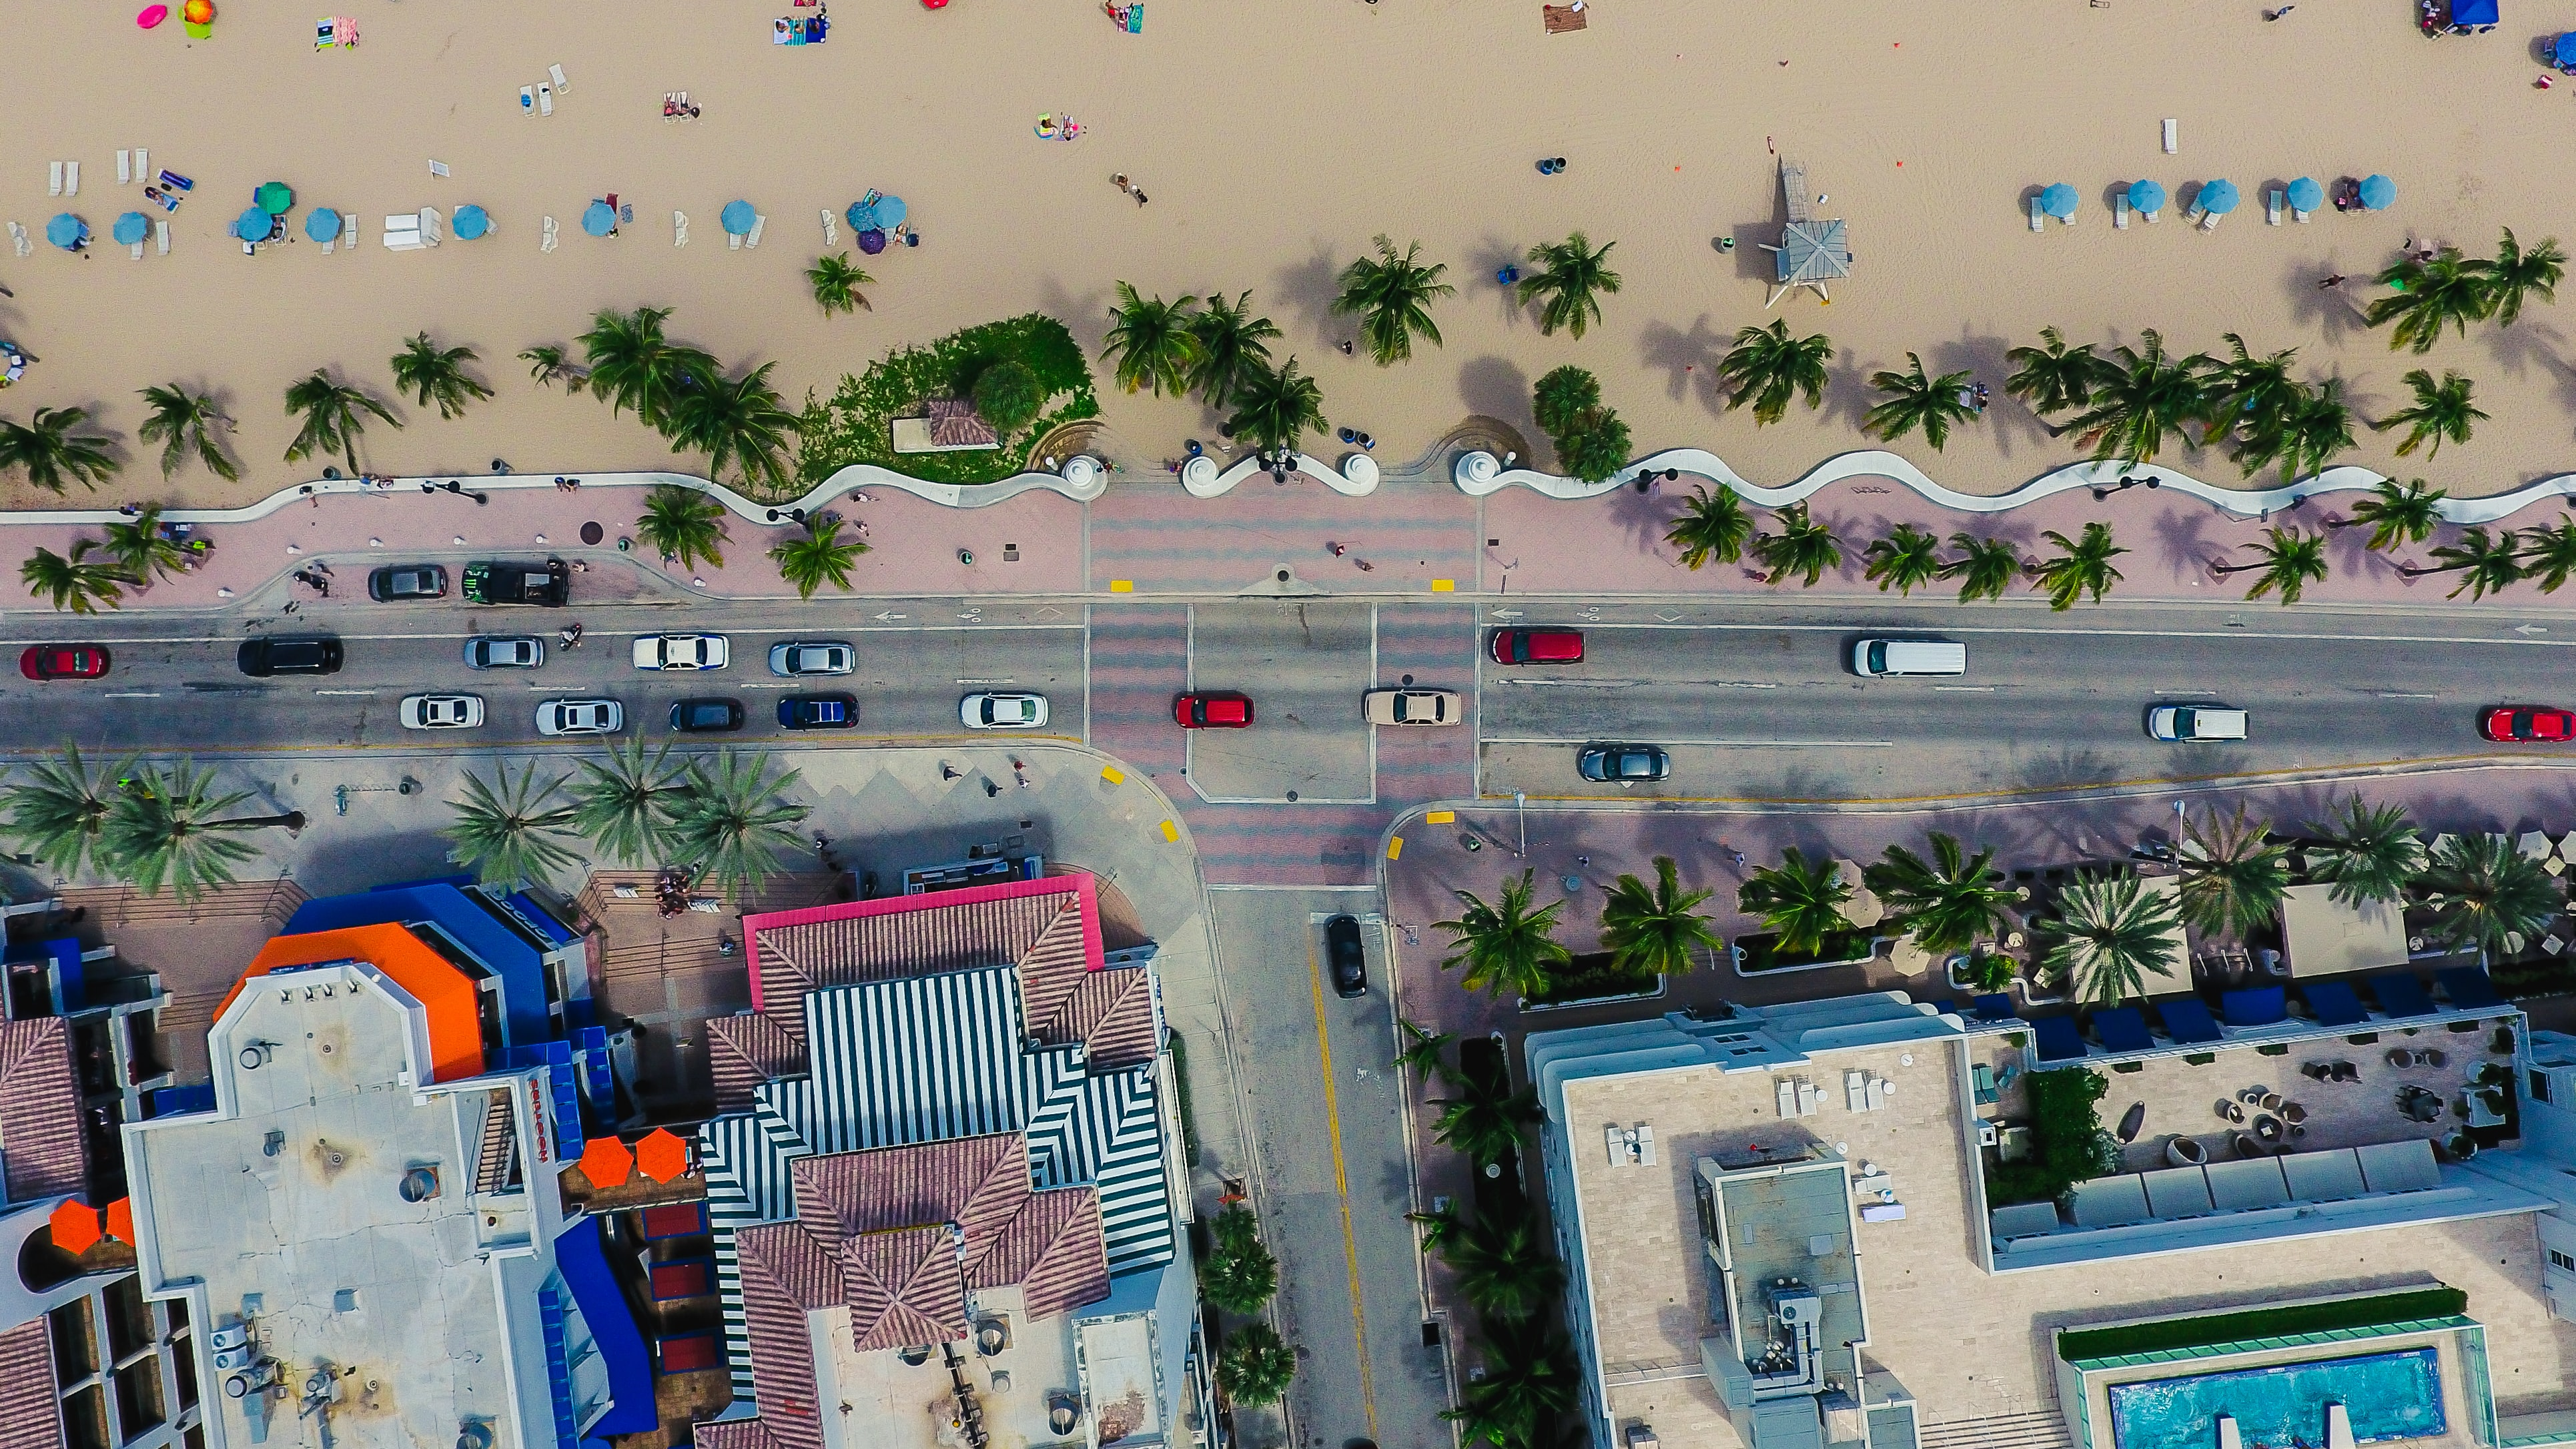 Drone view of the busy street by the sand beach in East Fort Lauderdale, Fort Lauderdale, Florida